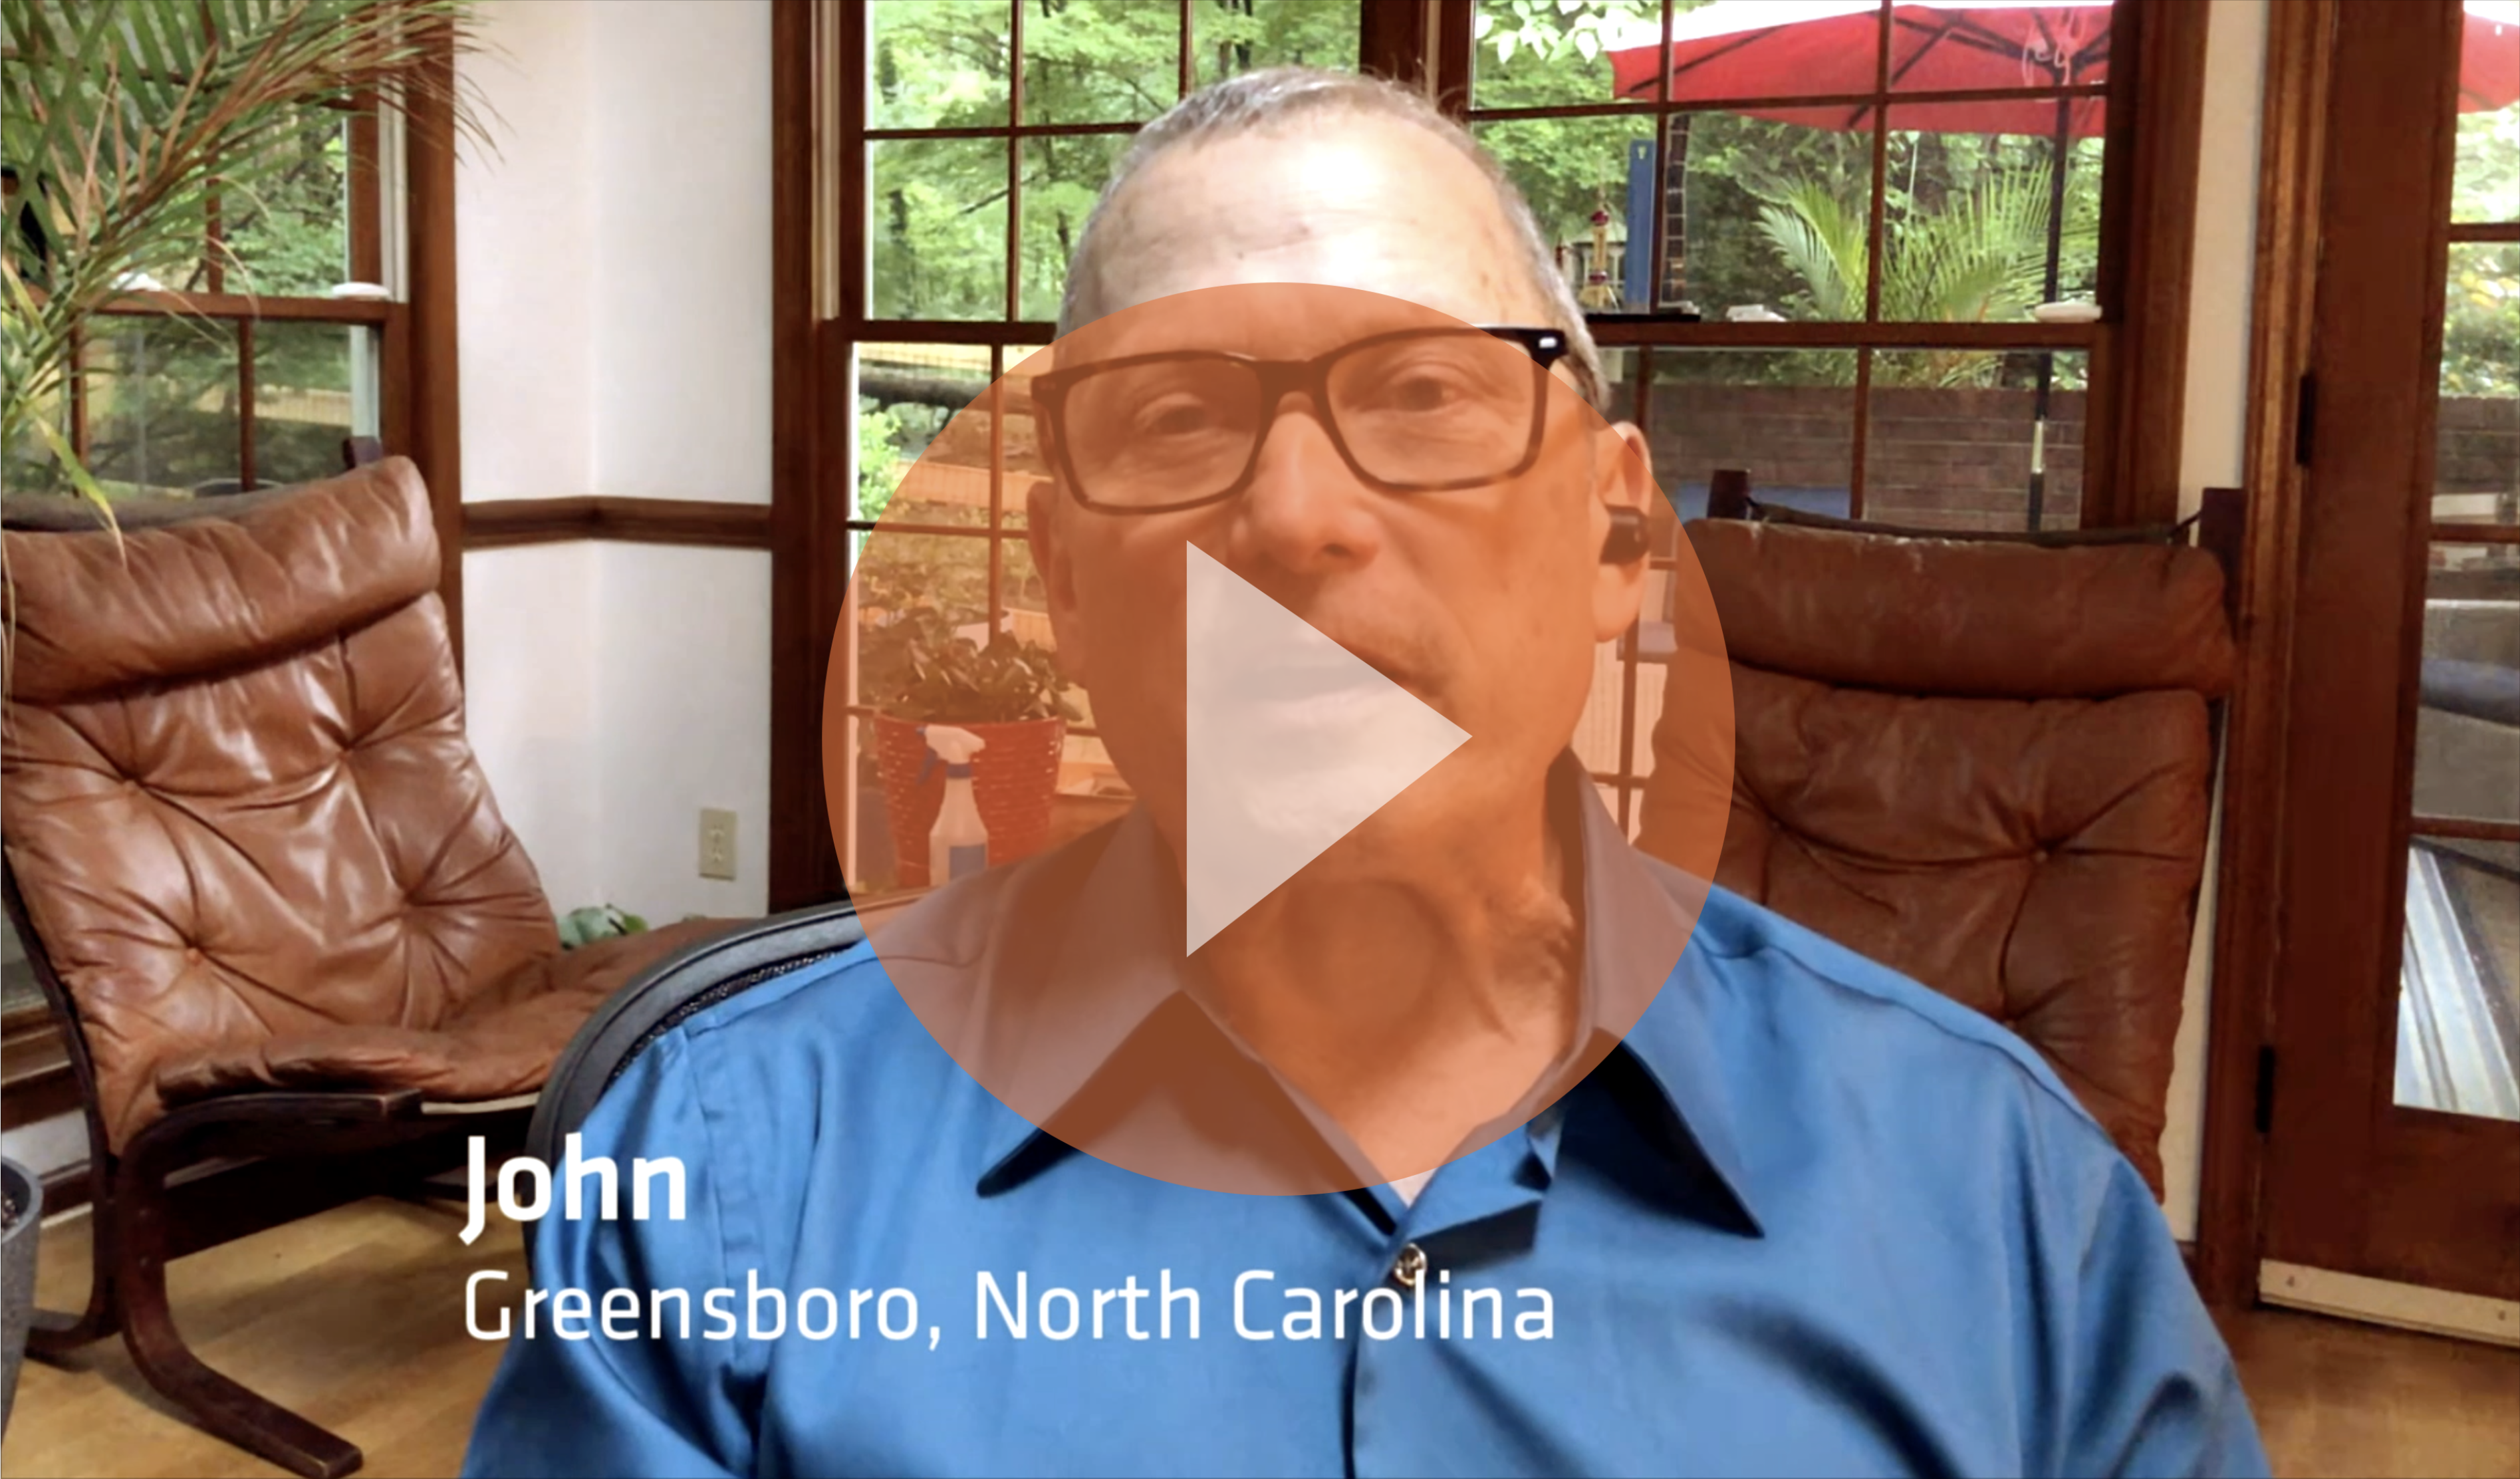 Watch this video to learn more about John's advanced non-small cell lung cancer diagnosis story